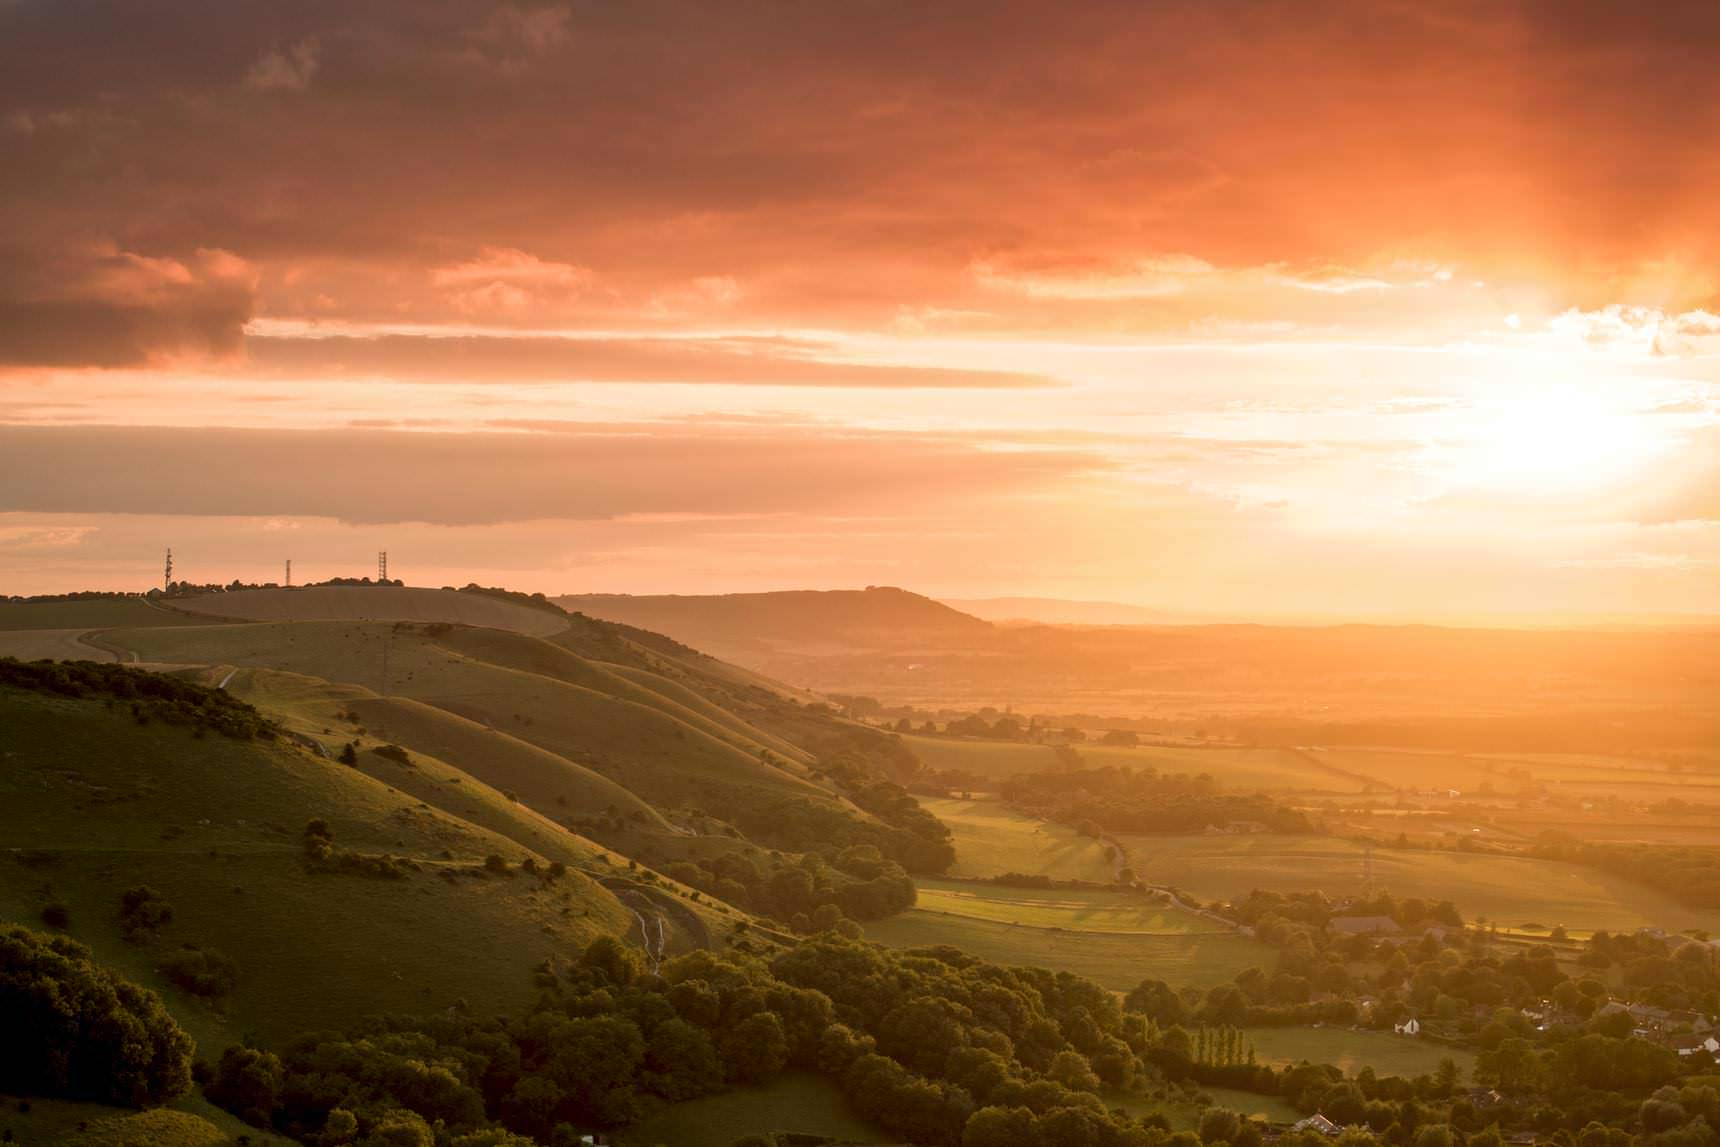 Sunset at Devil's Dyke